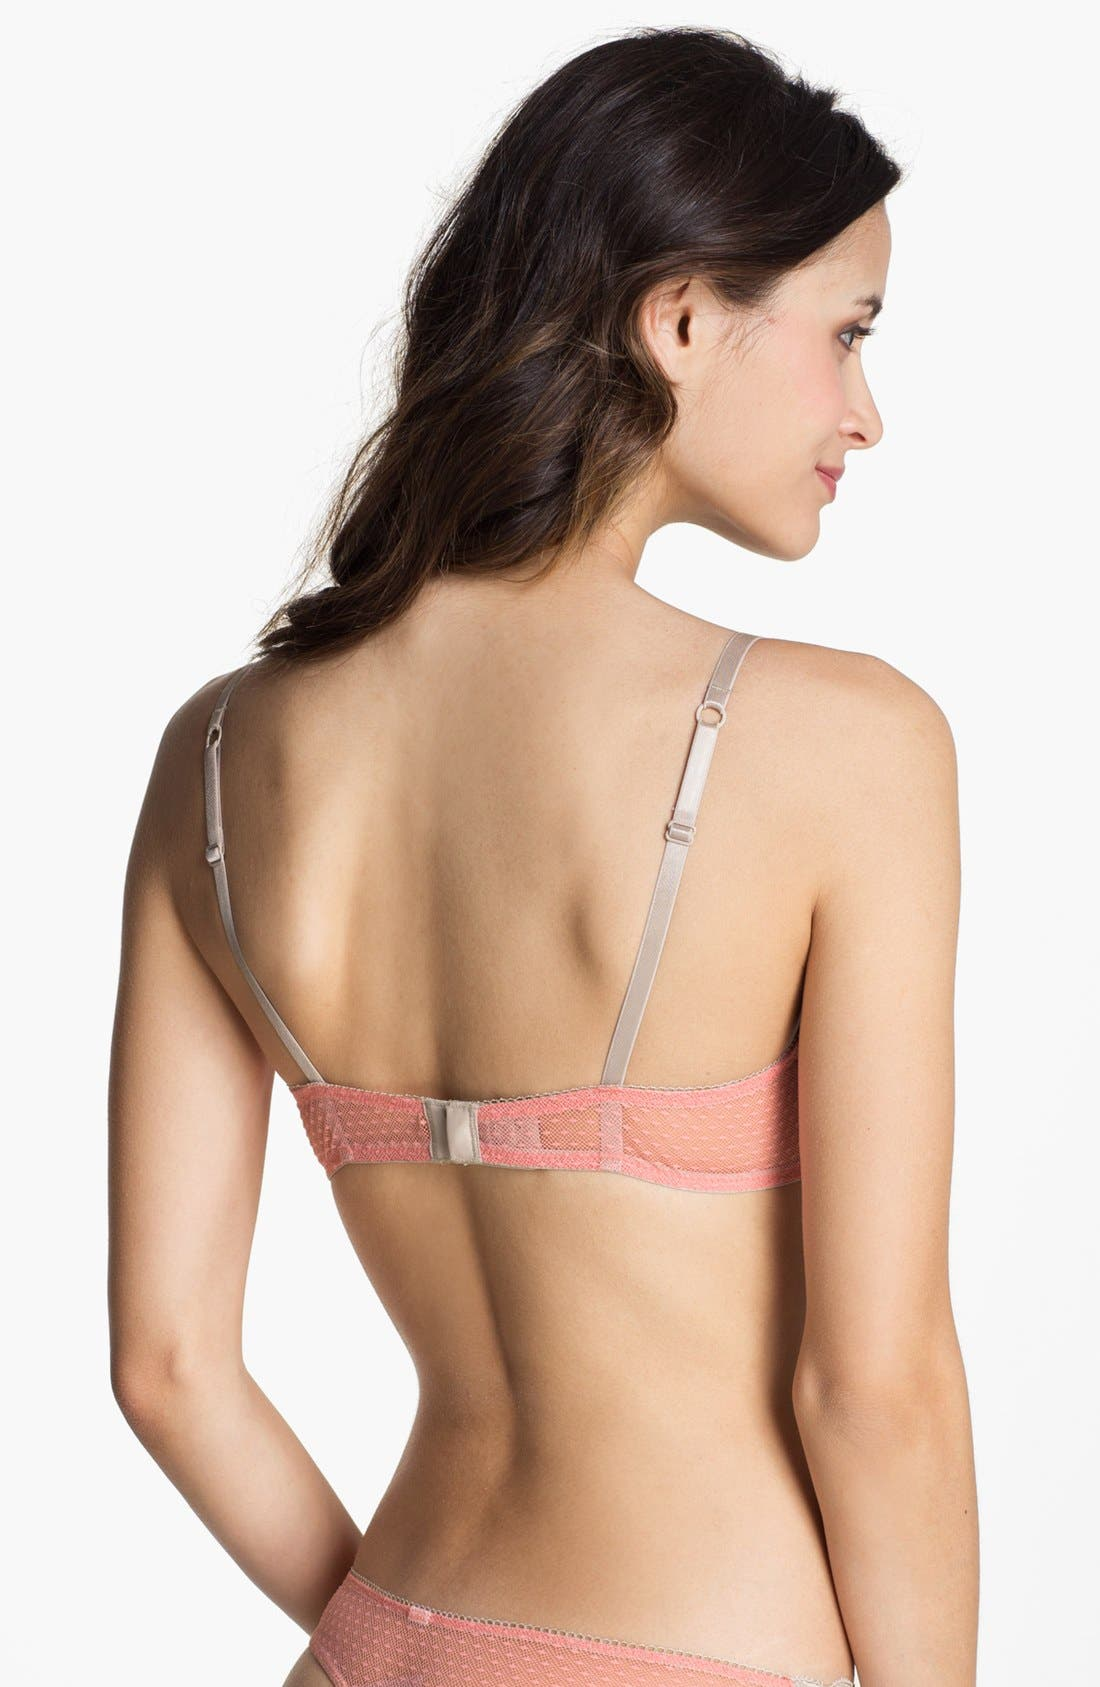 Alternate Image 2  - Miss Studio by La Perla 'Romantic Bay' Underwire Push-Up Bra